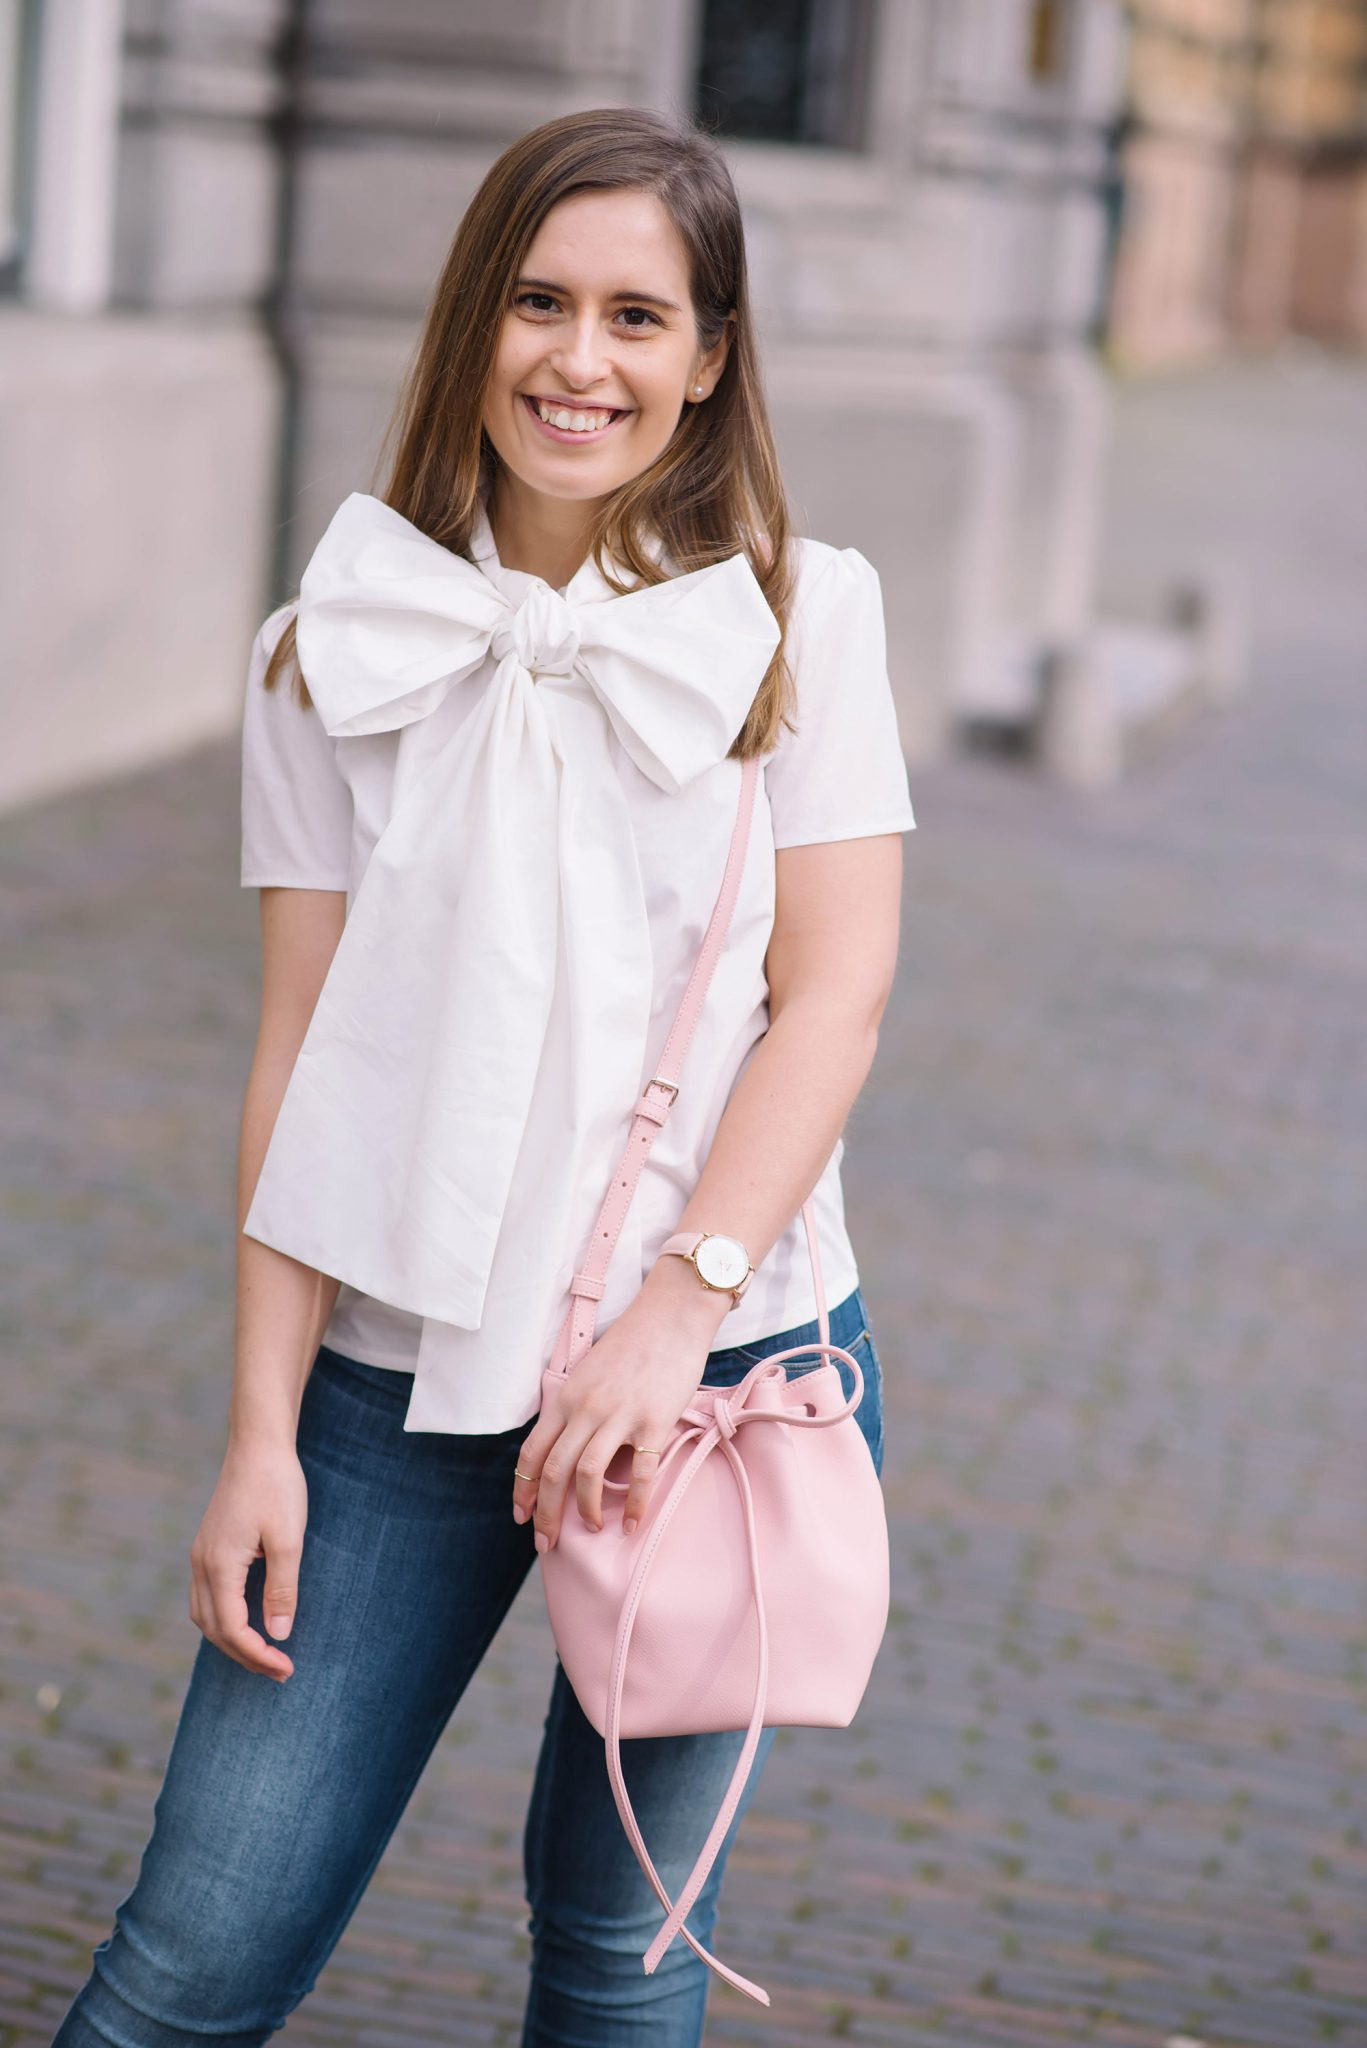 put-a-bow-on-it-thepetitecat-oversized-bow-blouse